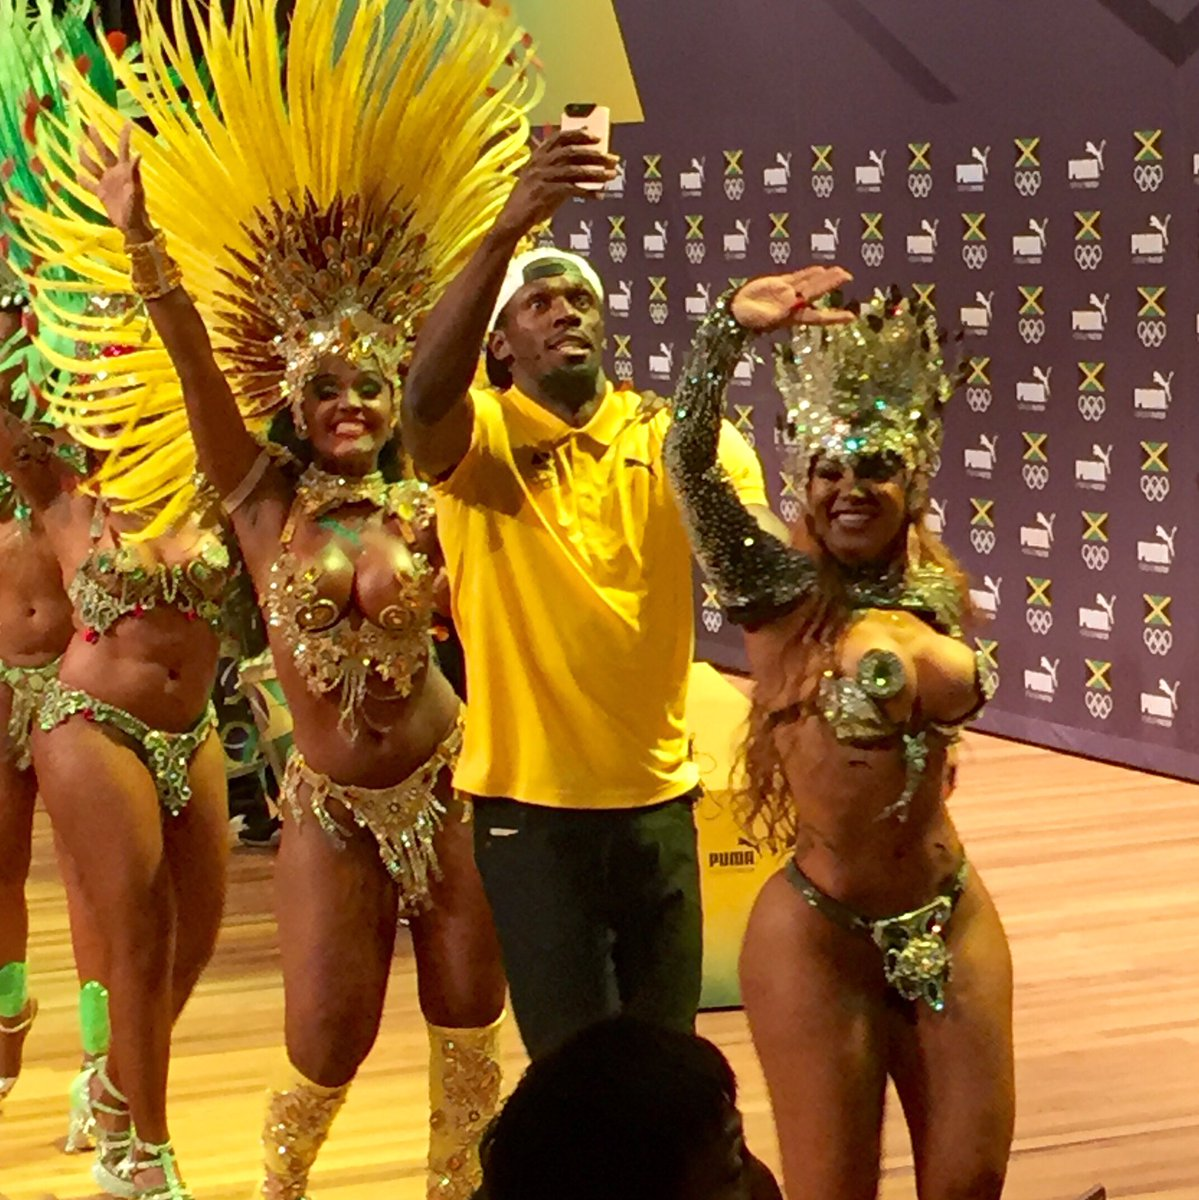 Usain Bolt walking out of his press conference with a dancing entourage https://t.co/6vm9mIlEBD